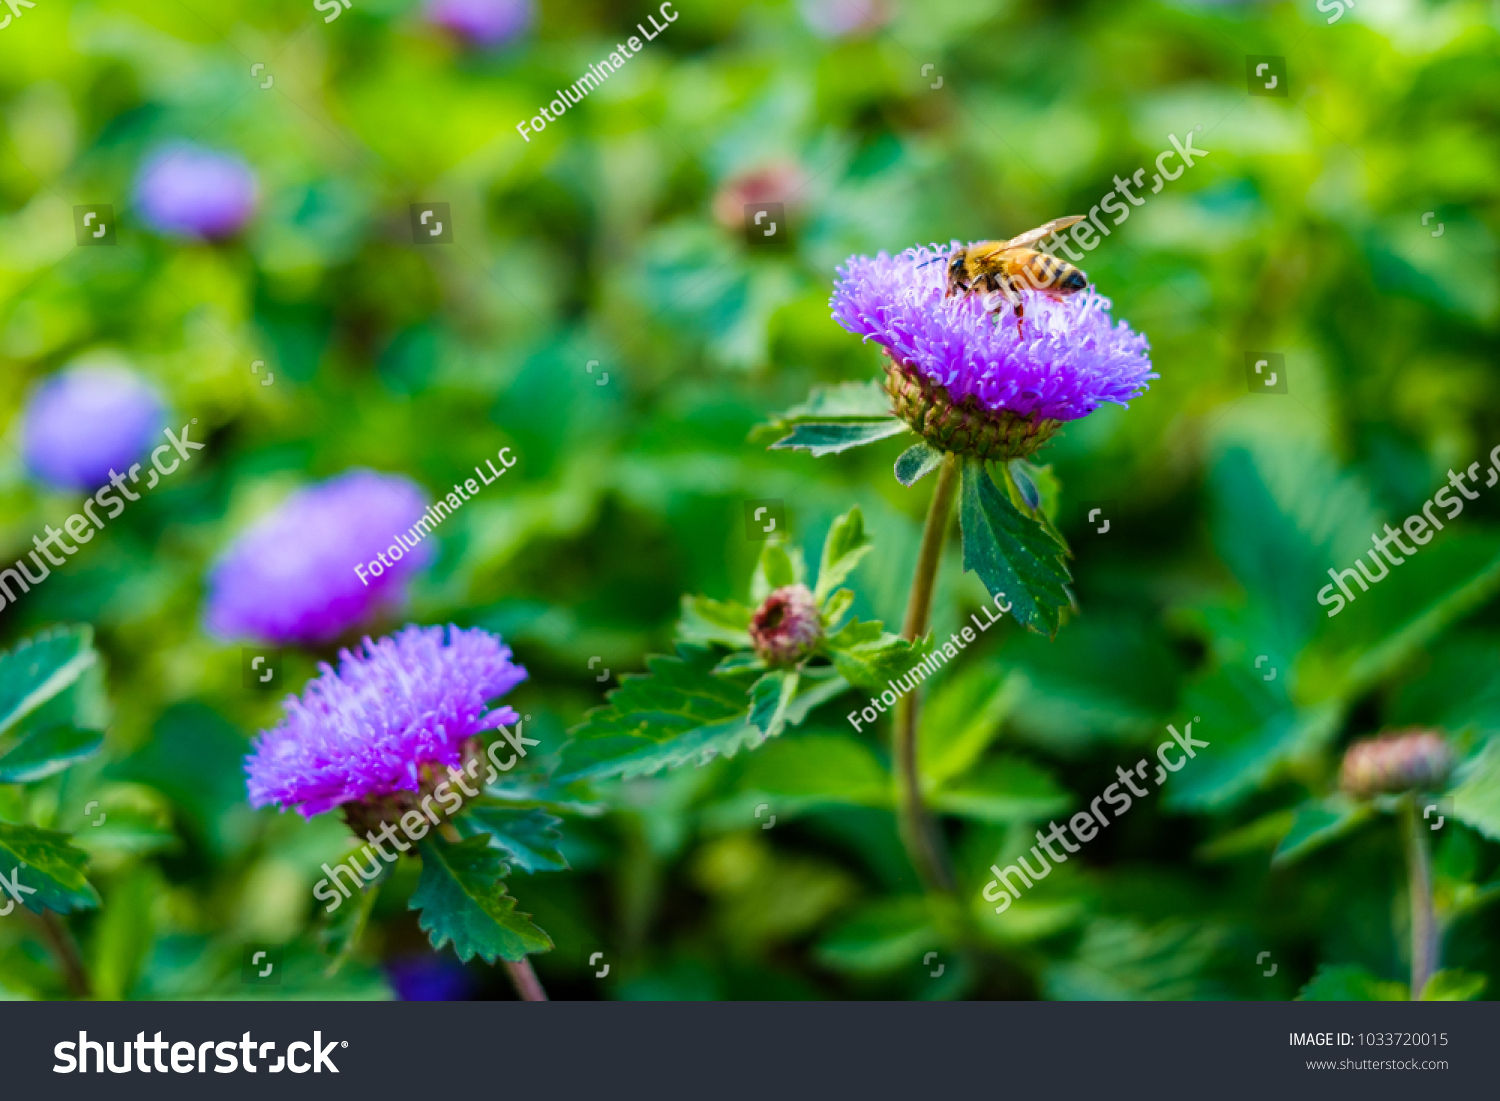 Close Up View Of Pretty Purple Flowers In A Garden With A Honey Bee